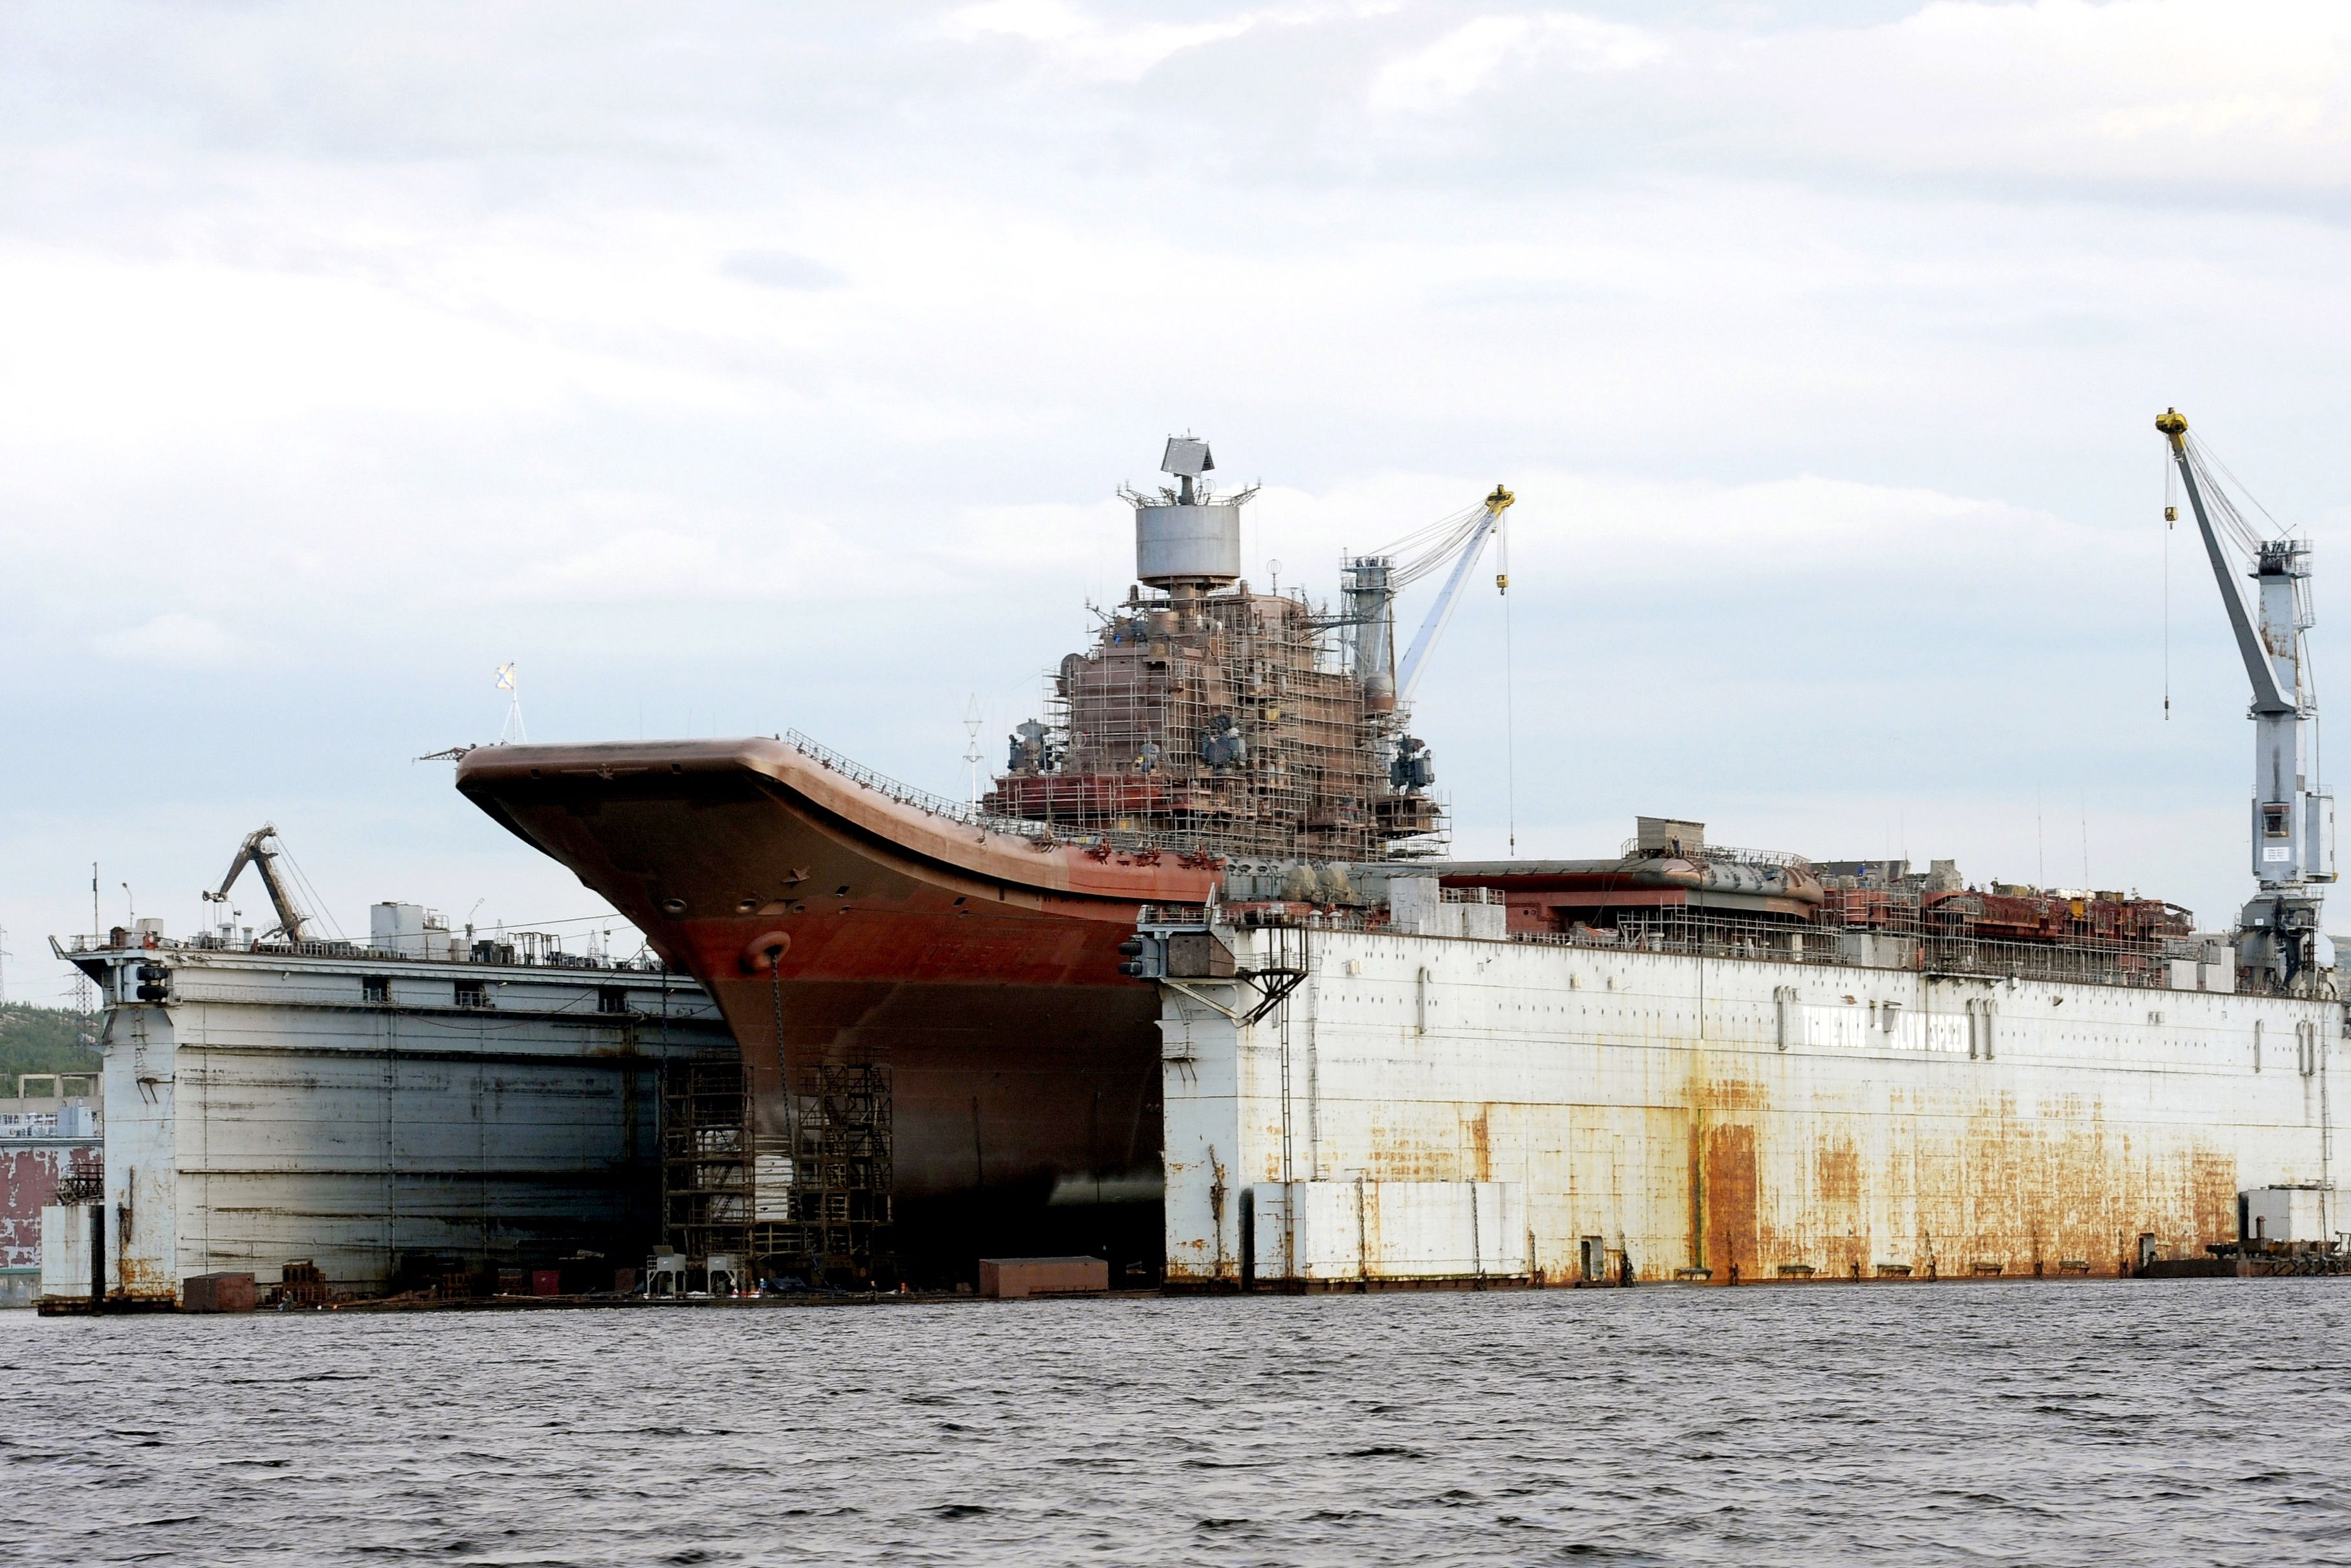 Russia's Hard-Luck Carrier Damaged in Shipyard Accident